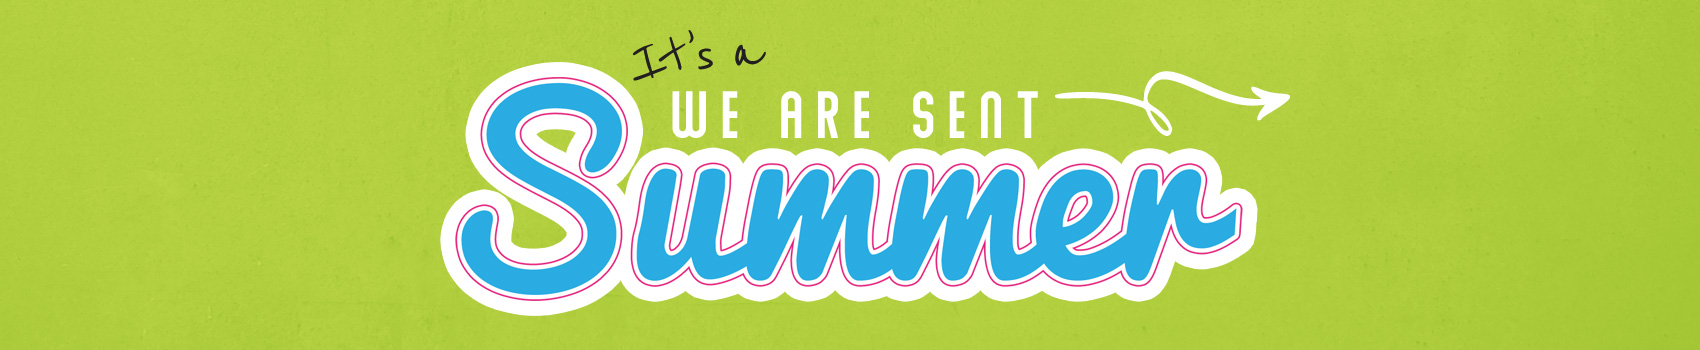 We are sent summer